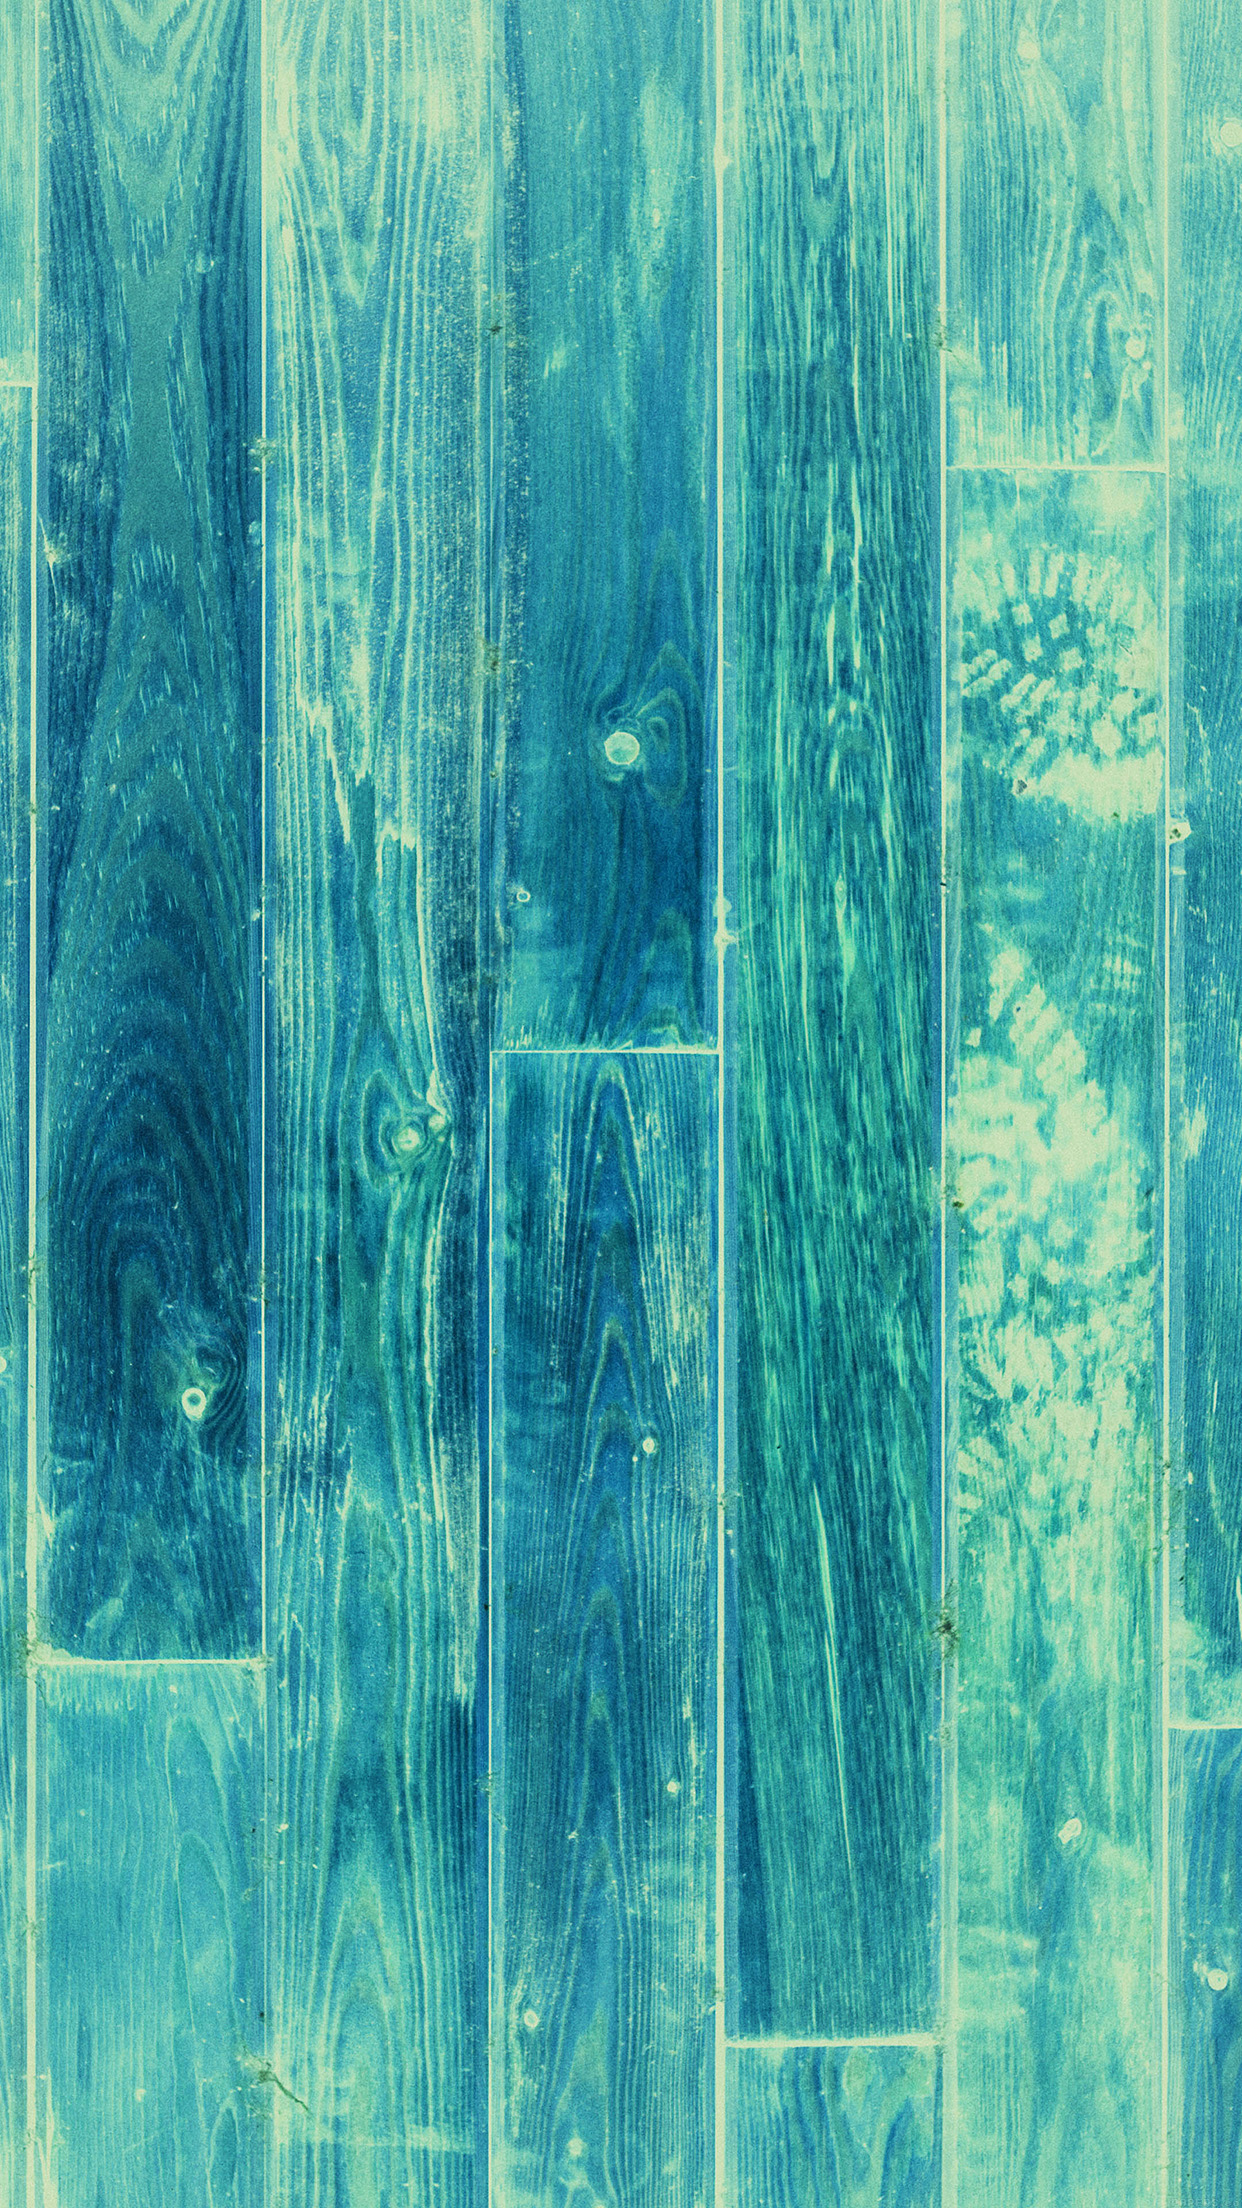 ve58-wood-stock-pattern-nature-blue - Papers.co